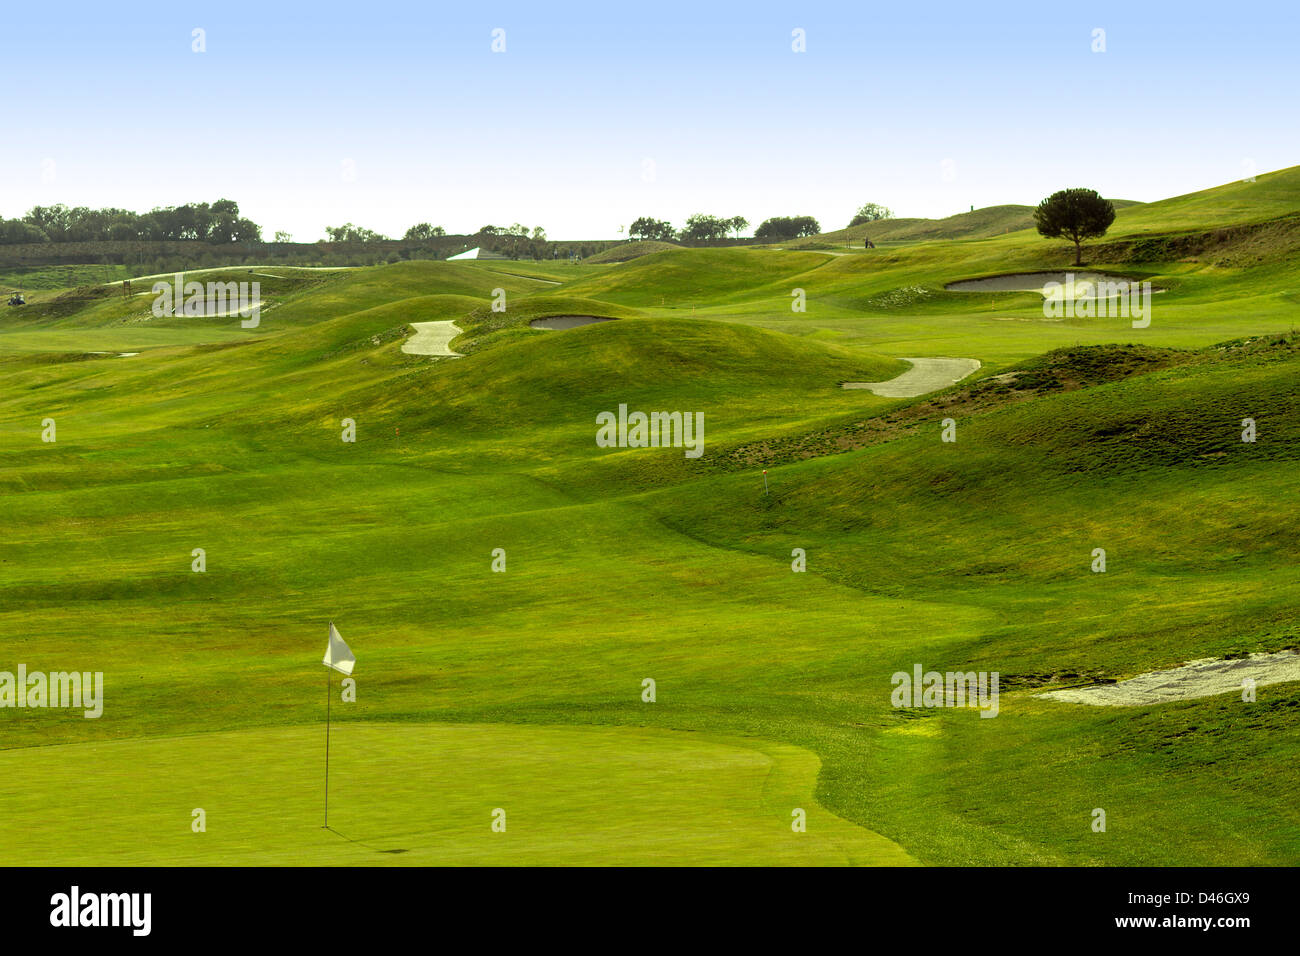 A beautiful golf course in Madrid - Stock Image